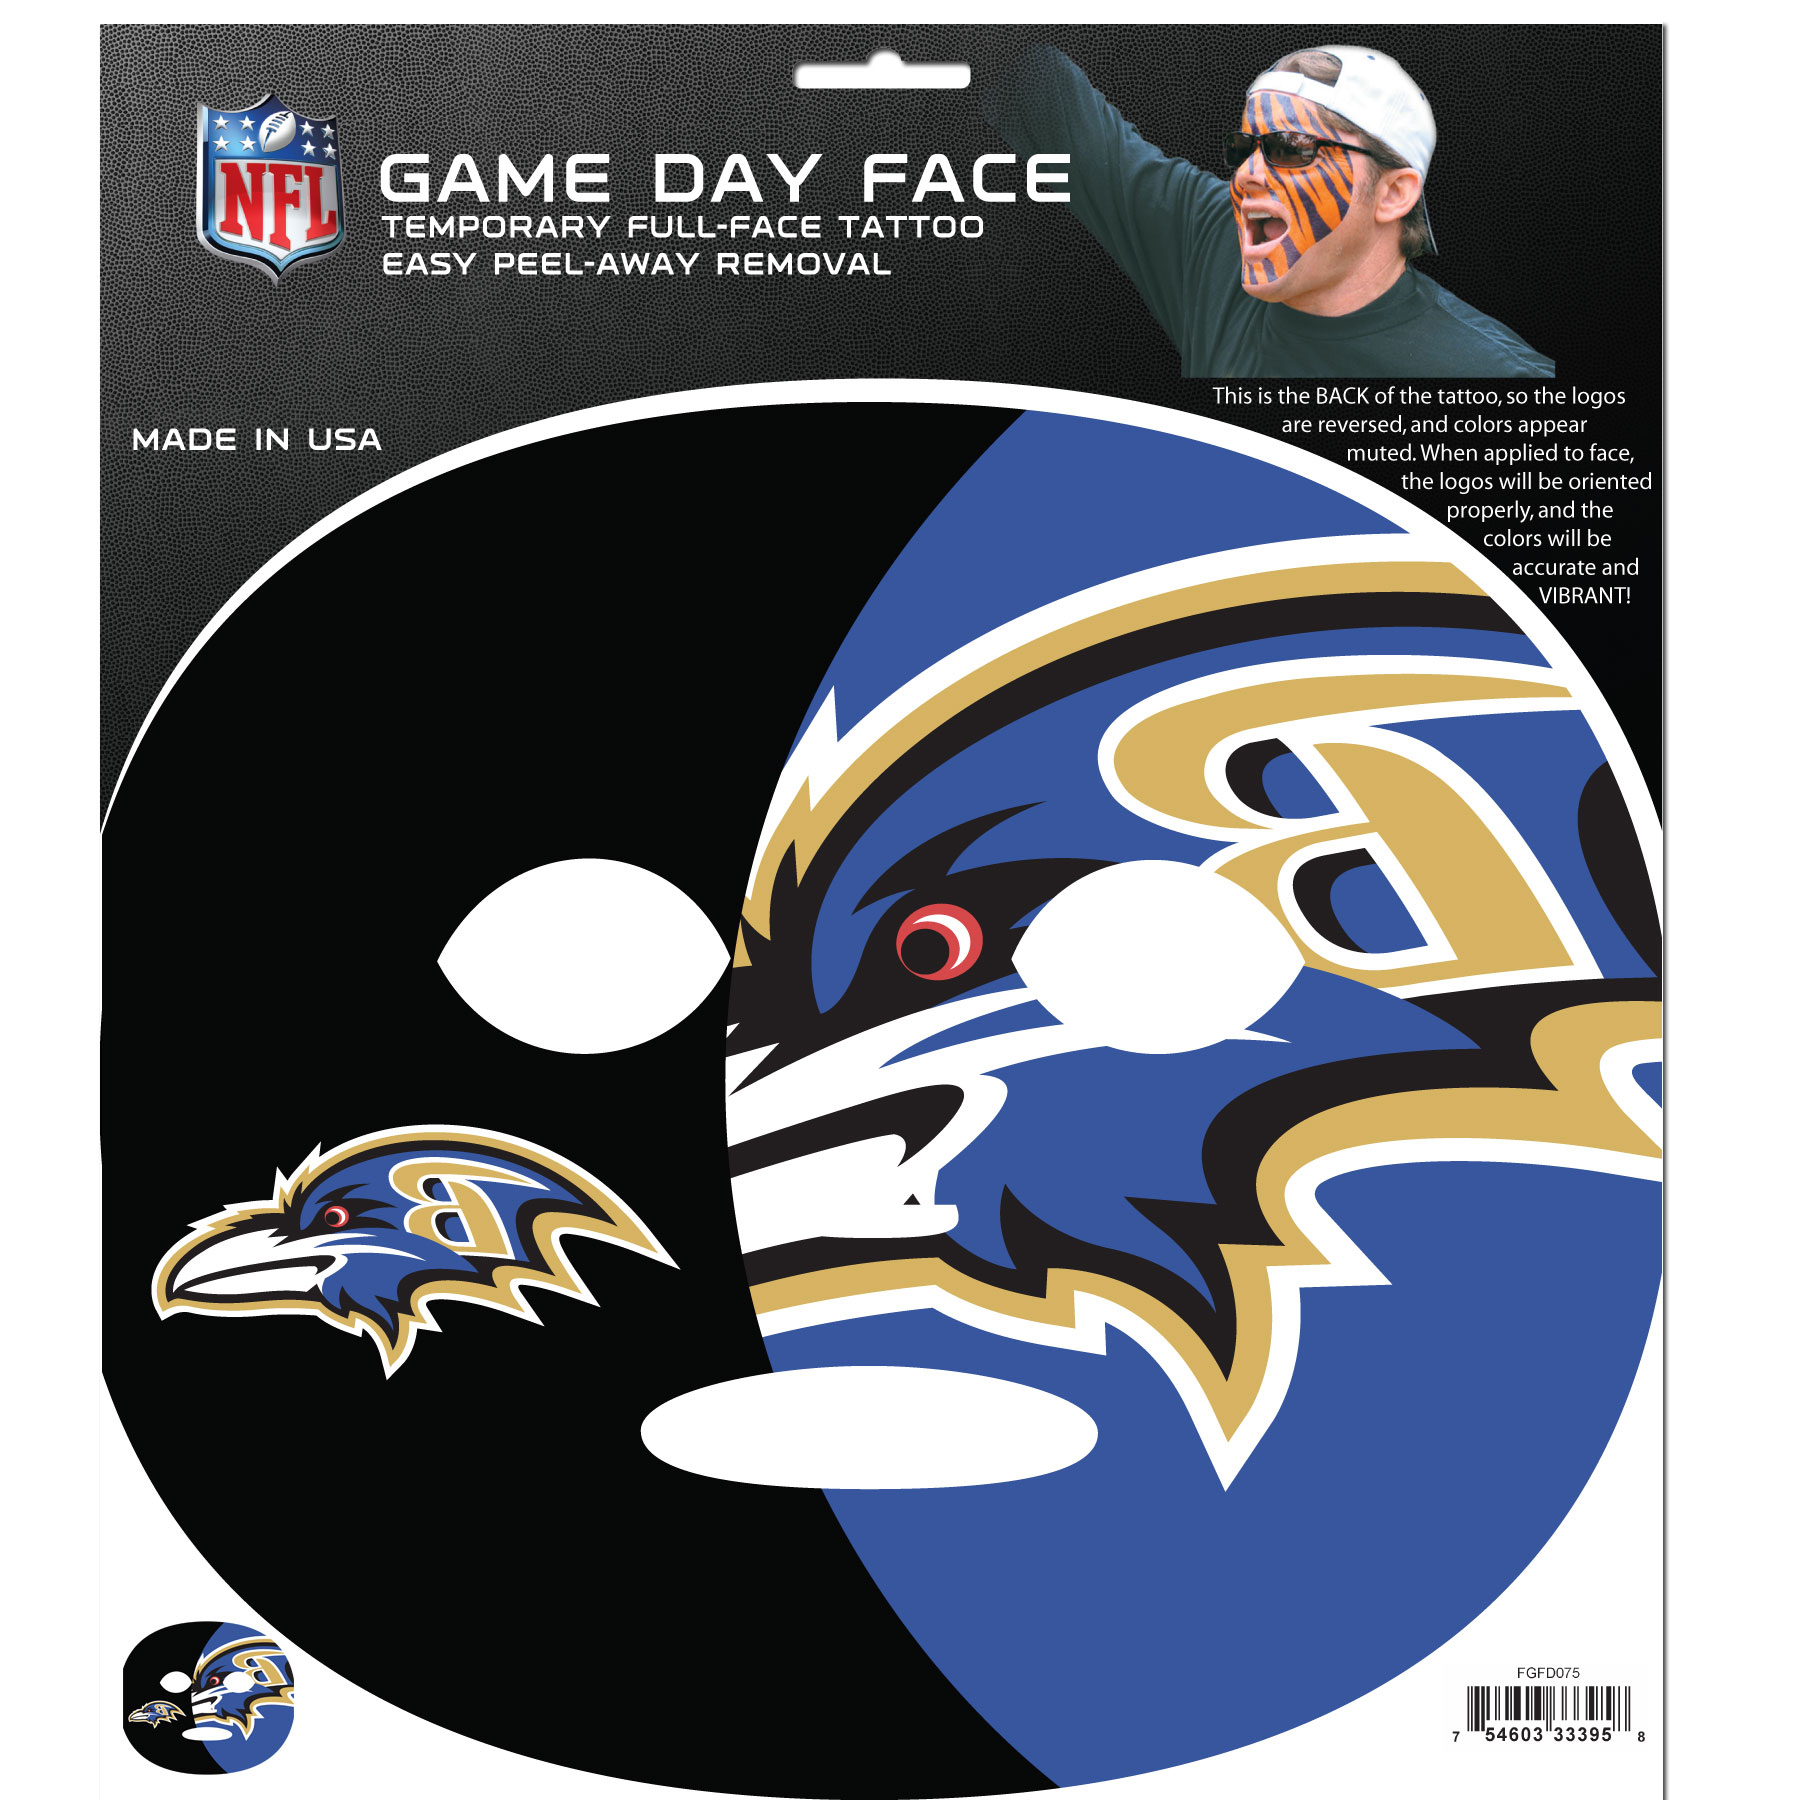 Baltimore Ravens Set of 8 Game Day Faces - No better way to show your team pride than by painting your face. Siskiyou's Game Day Face Temporary Tattoo isn't your typical face paint. It is a water based application that doesn't smudge, smear or sweat off while you're wearing it and easily peels off after you're done celebrating your team's big Win! The temporary tattoo is large enough to trim down to fit your face. Our Game Day Face Temporary Tattoo's are fun for fans of all ages. You may have seen our product before, these are the same Temporary Face Tattoos as pitched on ABC's Shark Tank.